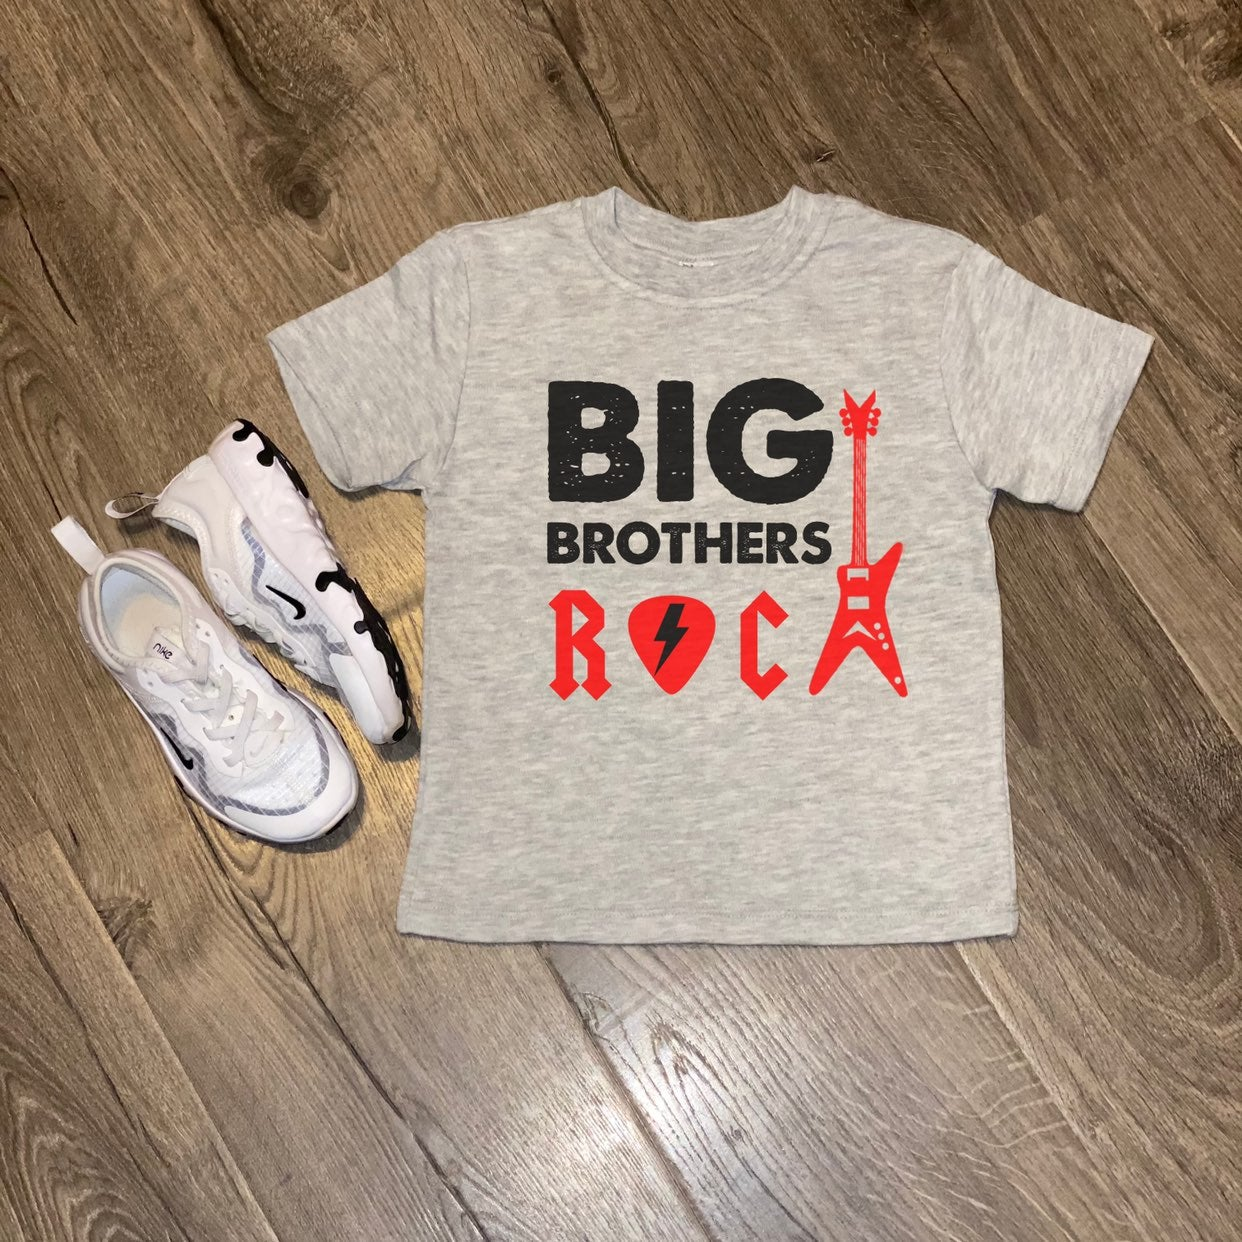 All Sizes-Toddler TShirt: Big Brothers